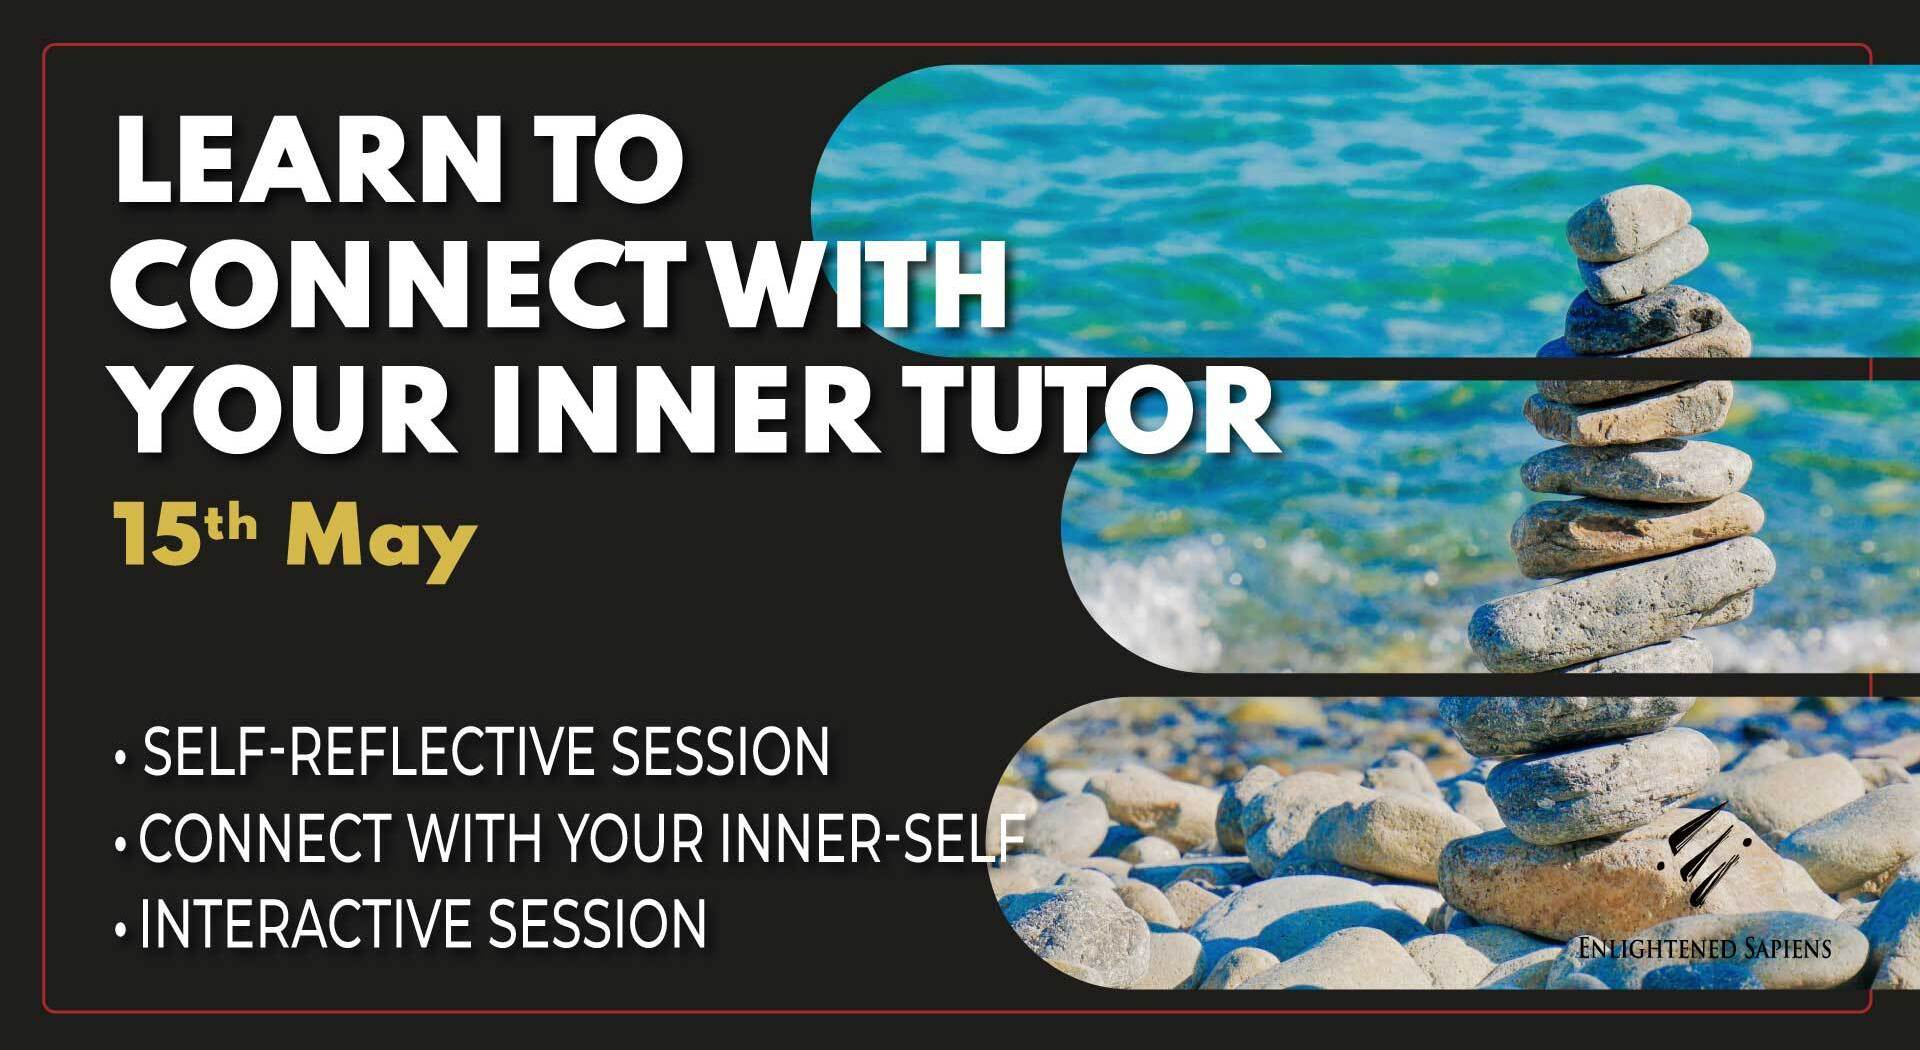 Learn to Connect with your Inner Tutor